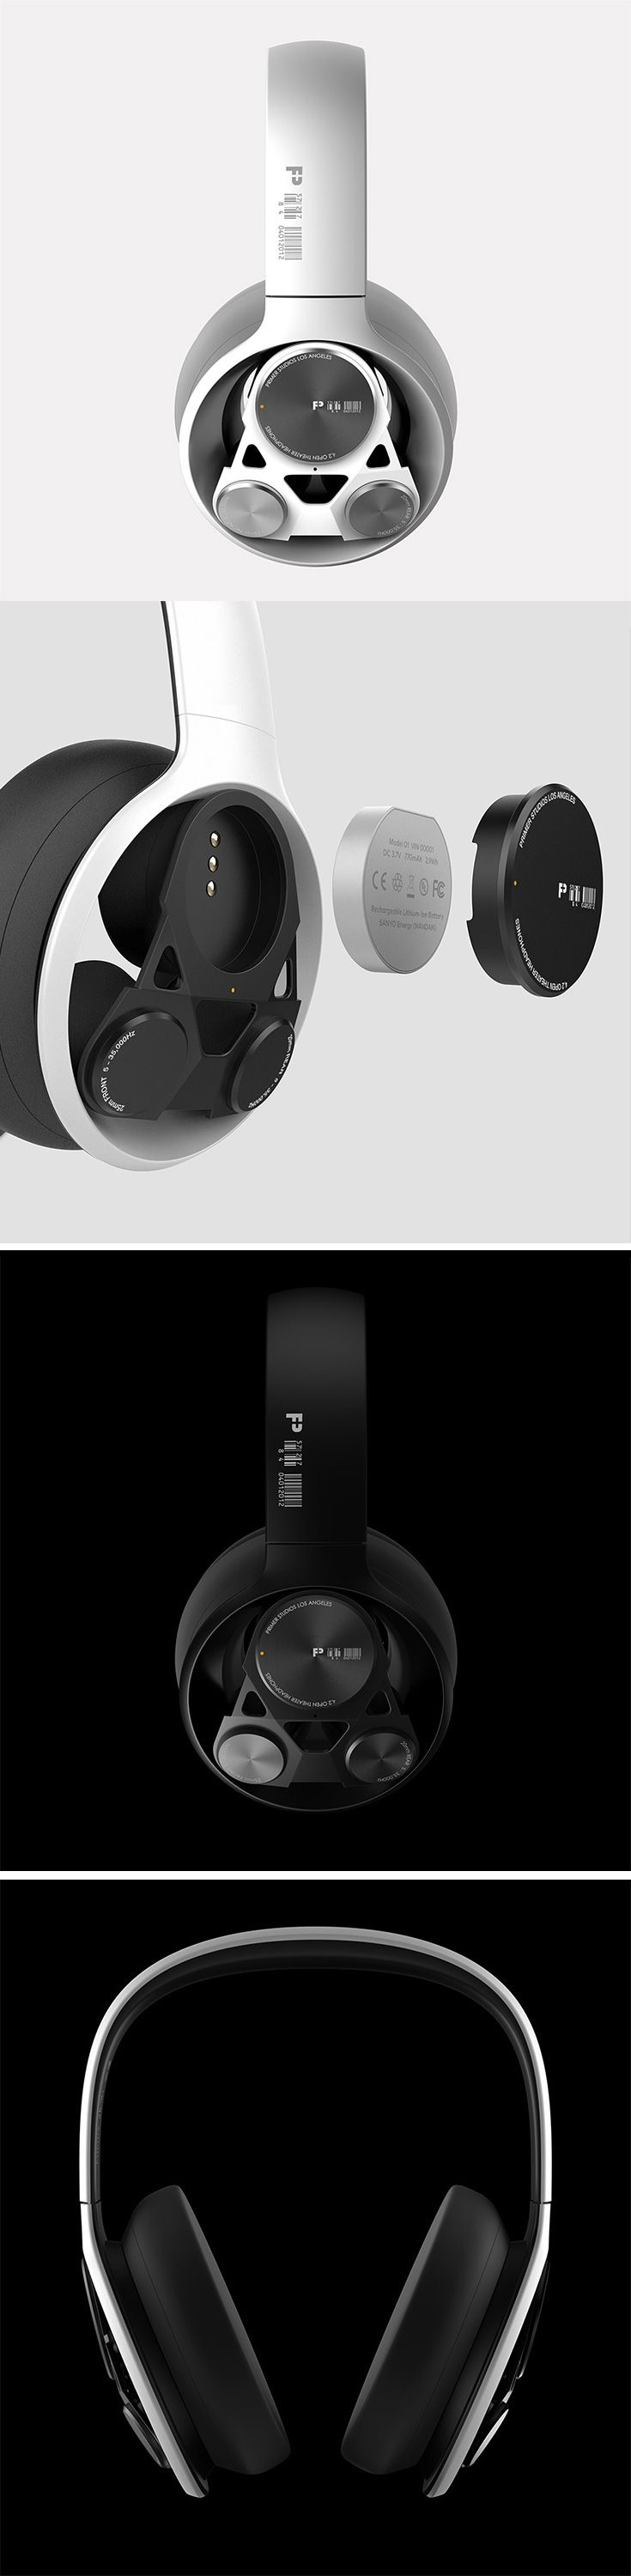 P-42 headphones will ensure no enemies are sneaking up behind you during a game! The designers at Primer Studios have engineered a Multi-Driver 4.2 Wireless Surround Sound Headset which utilizes two forward mounted 25mm drivers, two 20mm rear mounted drivers, as well as two 50mm centrally located base drivers to accurately reproduce true location-base surround sound.